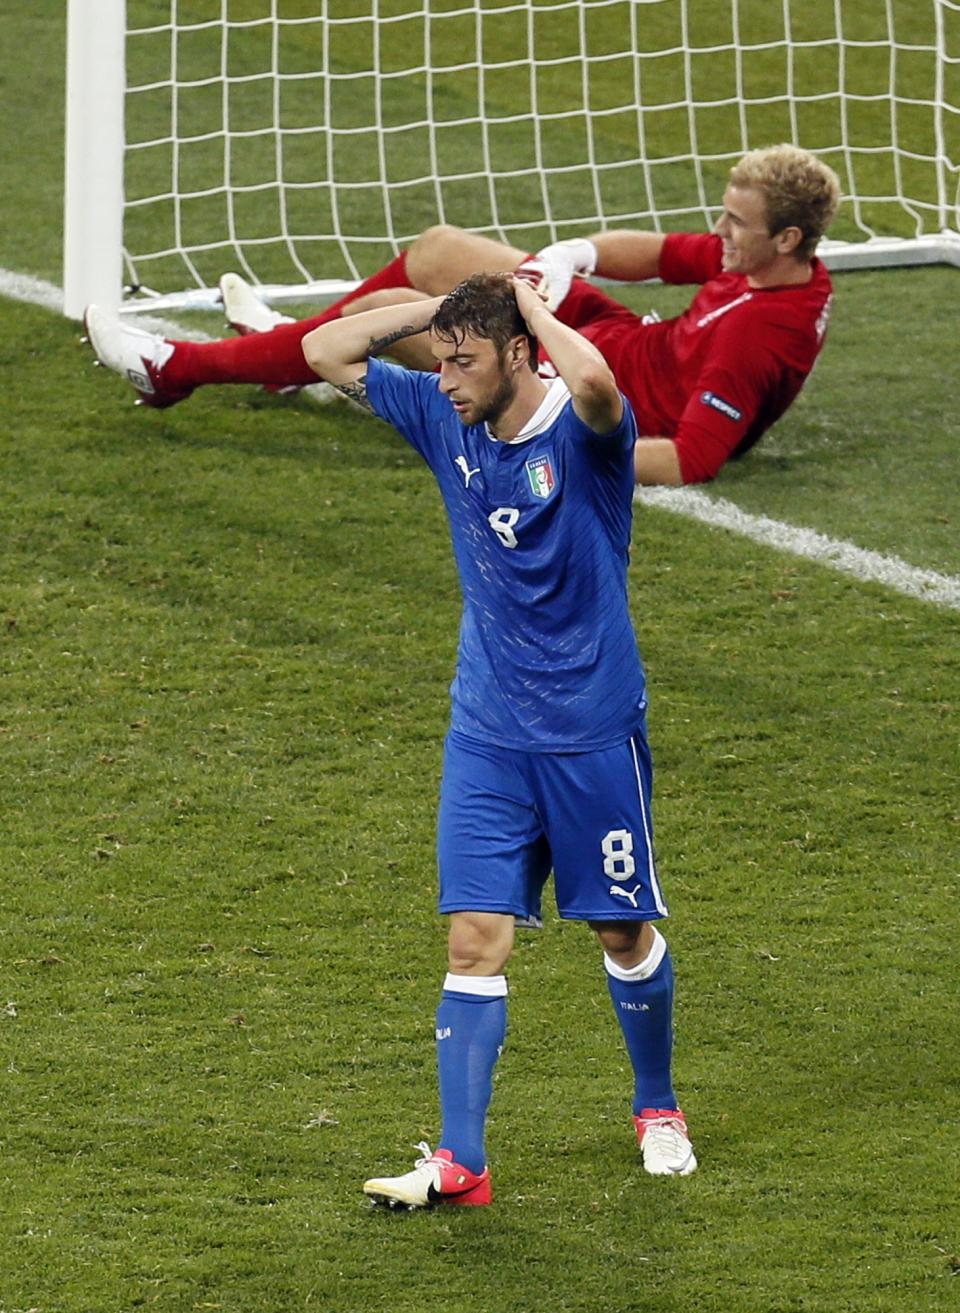 Italy's Claudio Marchisio, front, and England goalkeeper Joe Hart react after an Italy goal was disallowed during the Euro 2012 soccer championship quarterfinal match between England and Italy in Kiev, Ukraine, Monday, June 25, 2012. (AP Photo/Vadim Ghirda)